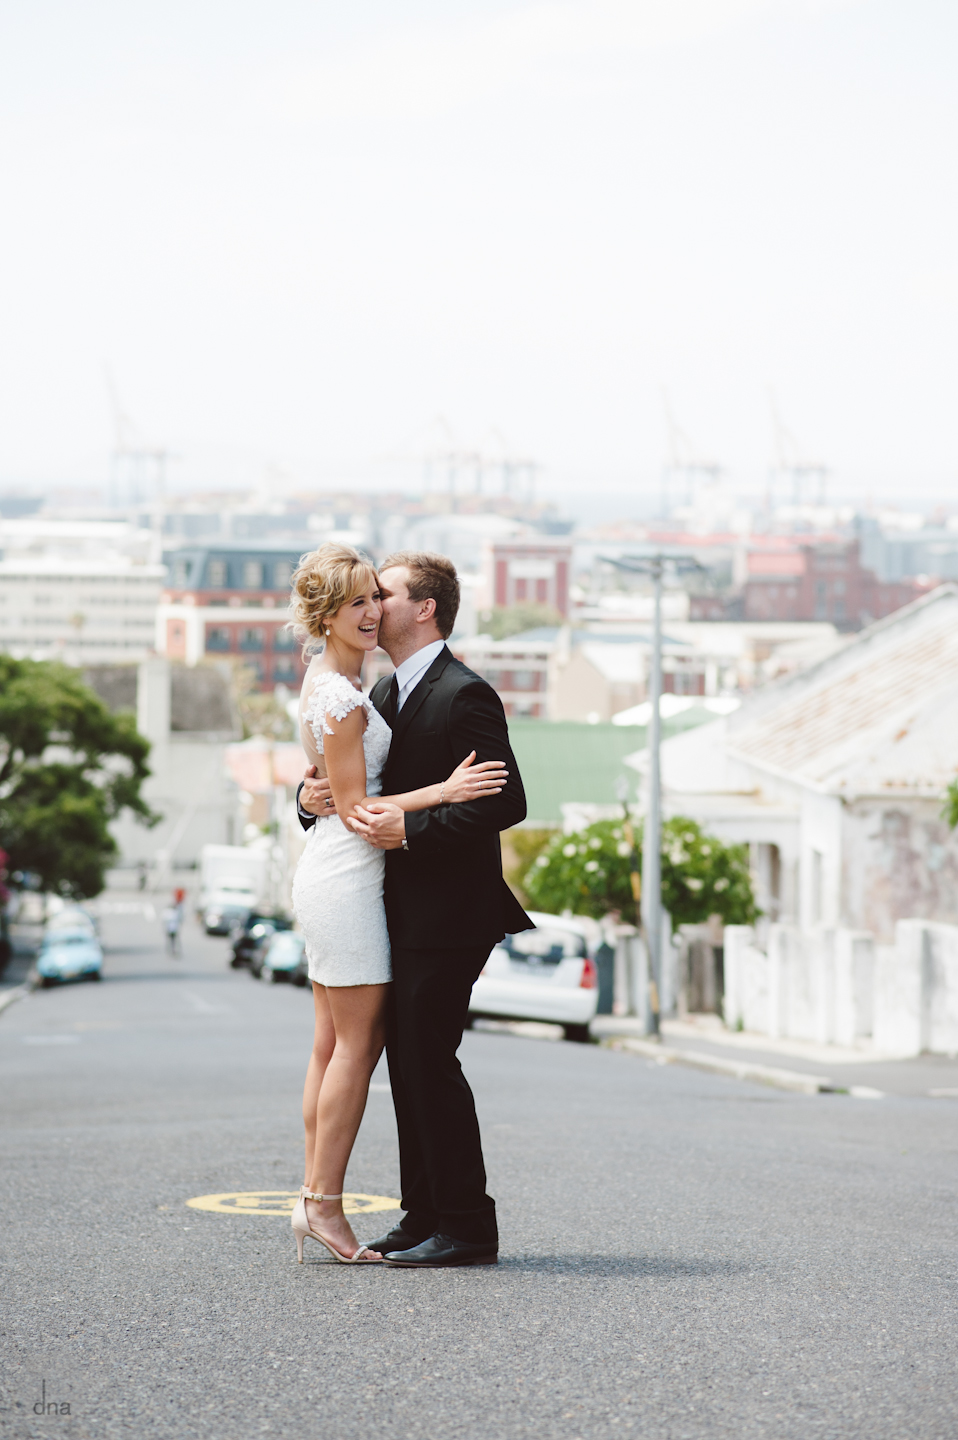 couple shoot Chrisli and Matt wedding Greek Orthodox Church Woodstock Cape Town South Africa shot by dna photographers 96.jpg